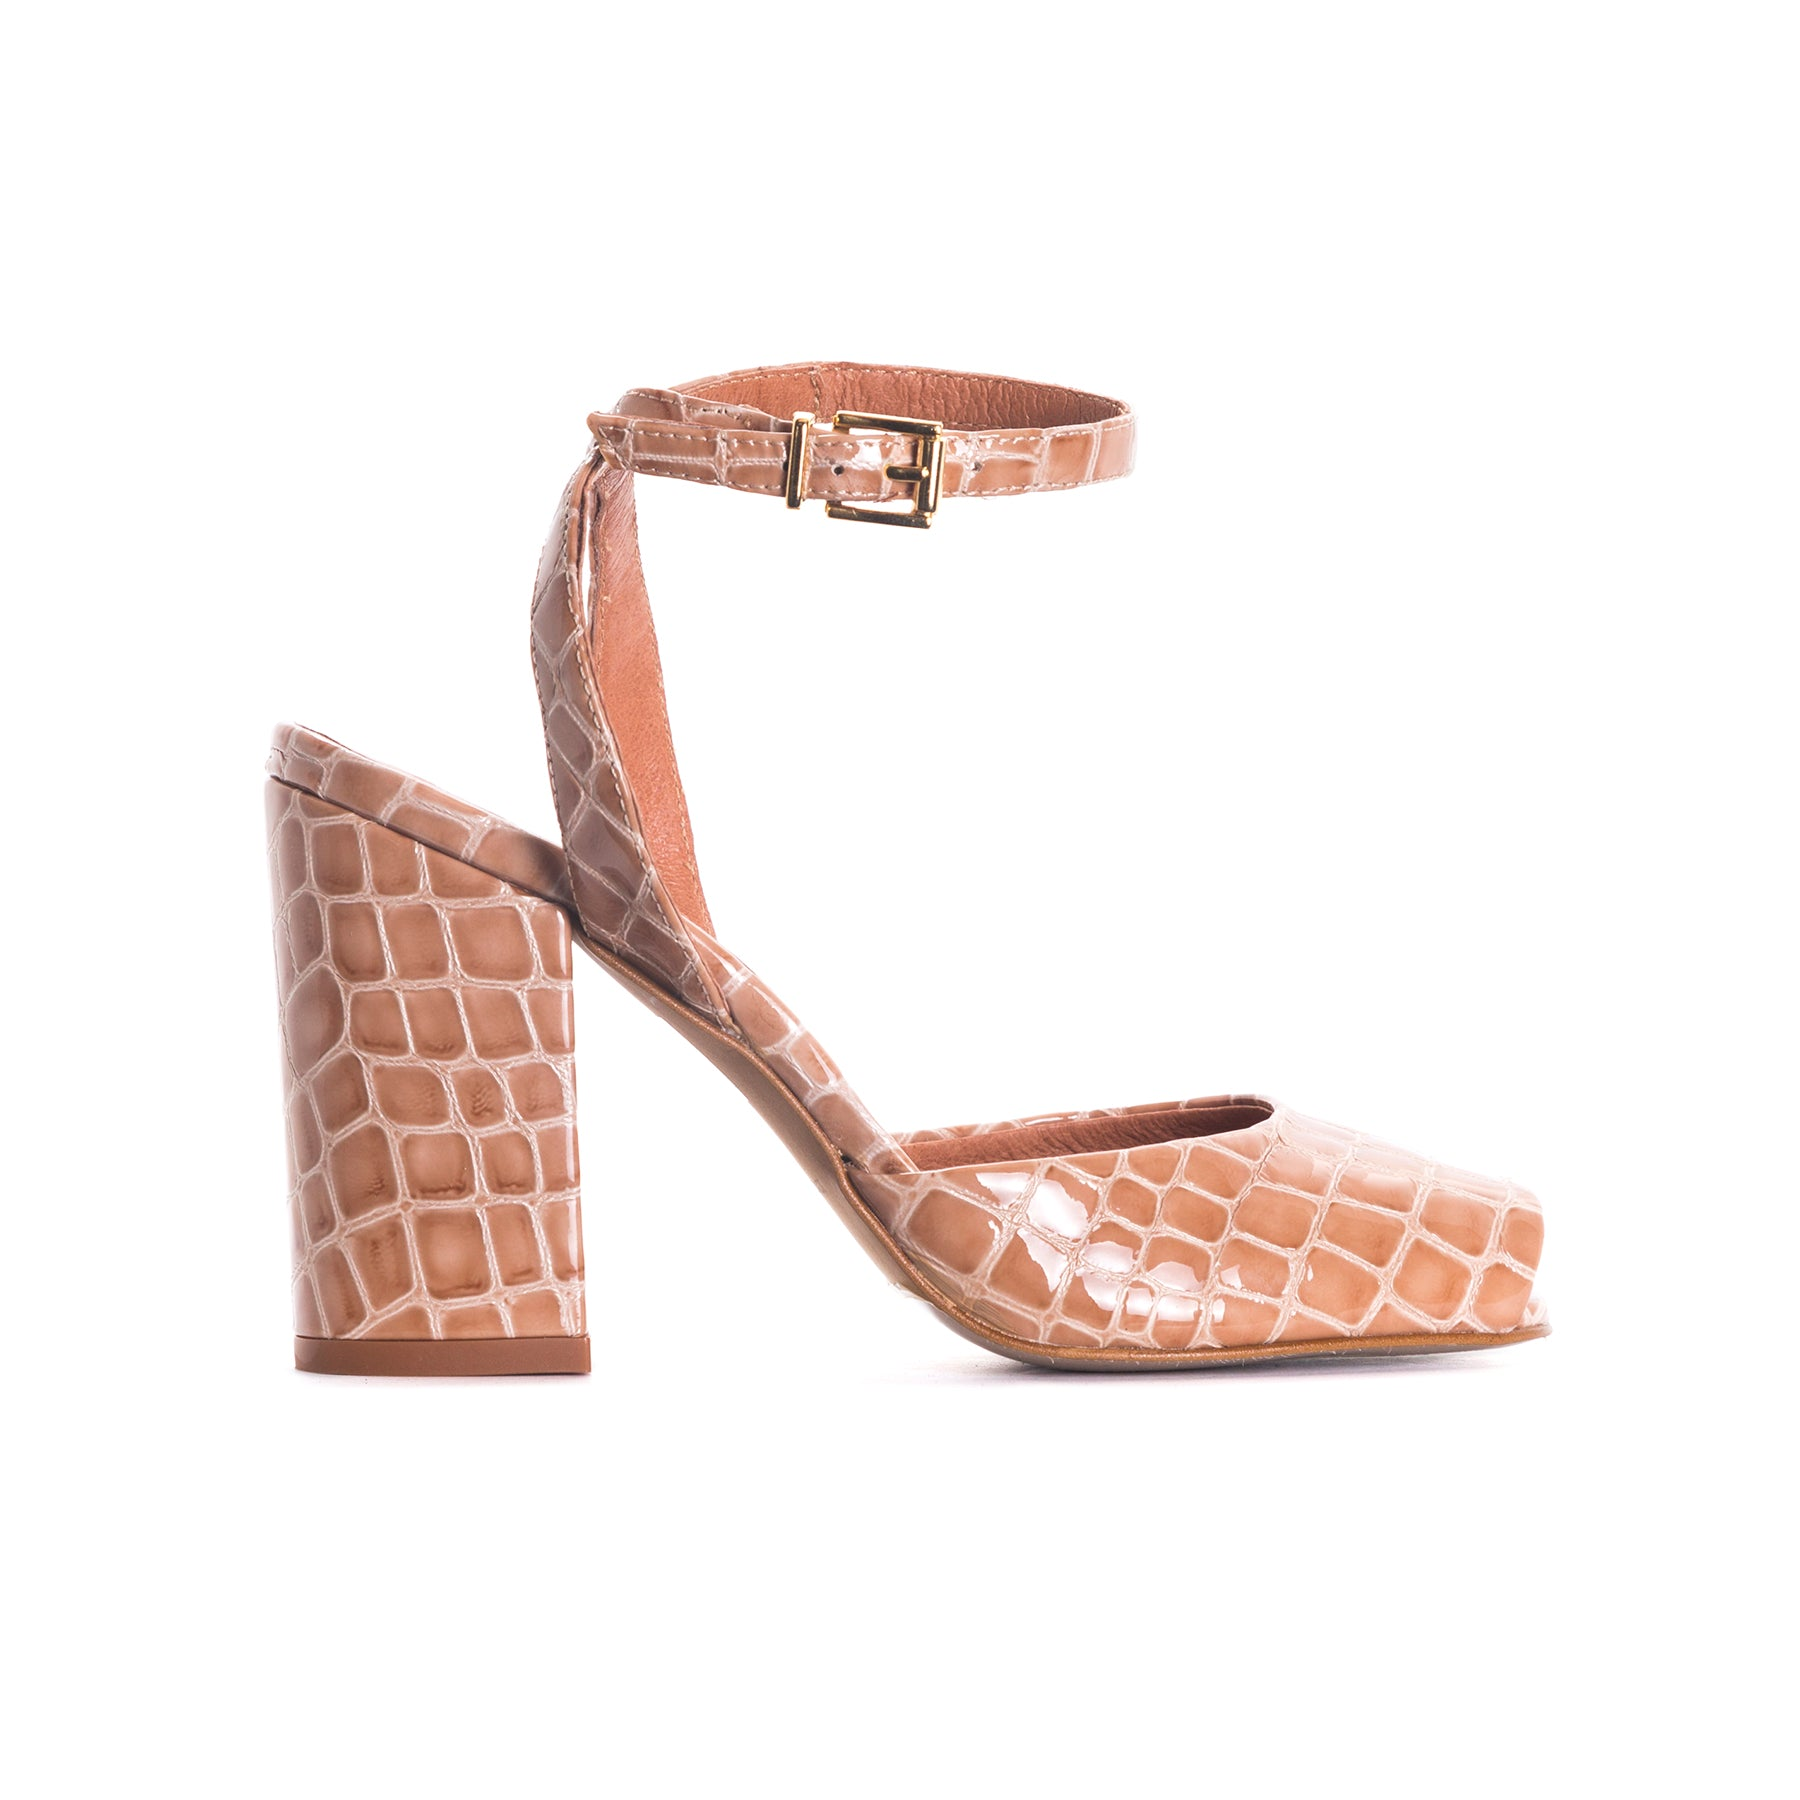 Mira Tan Croco Leather Sandals